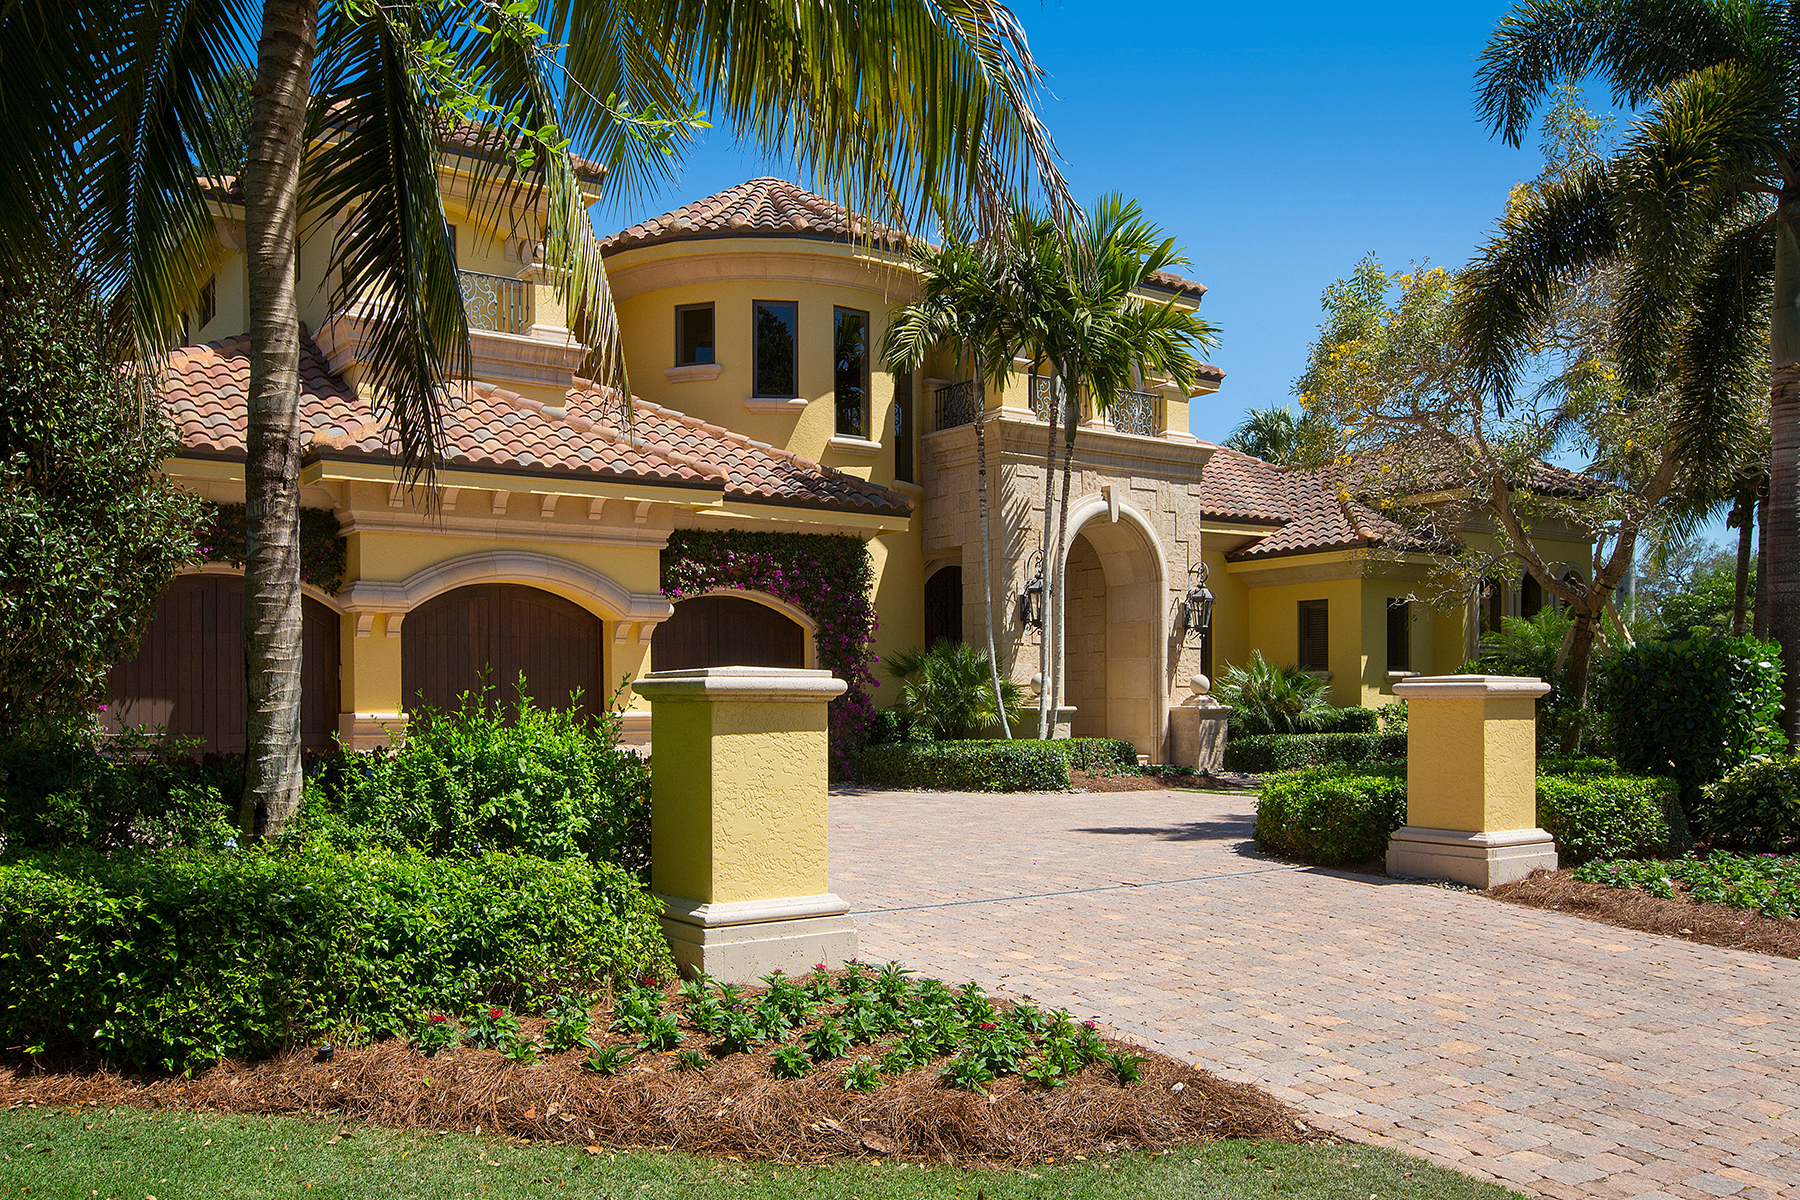 Single Family Home for Sale at COQUINA SANDS 1300 Murex Dr, Naples, Florida 34102 United States